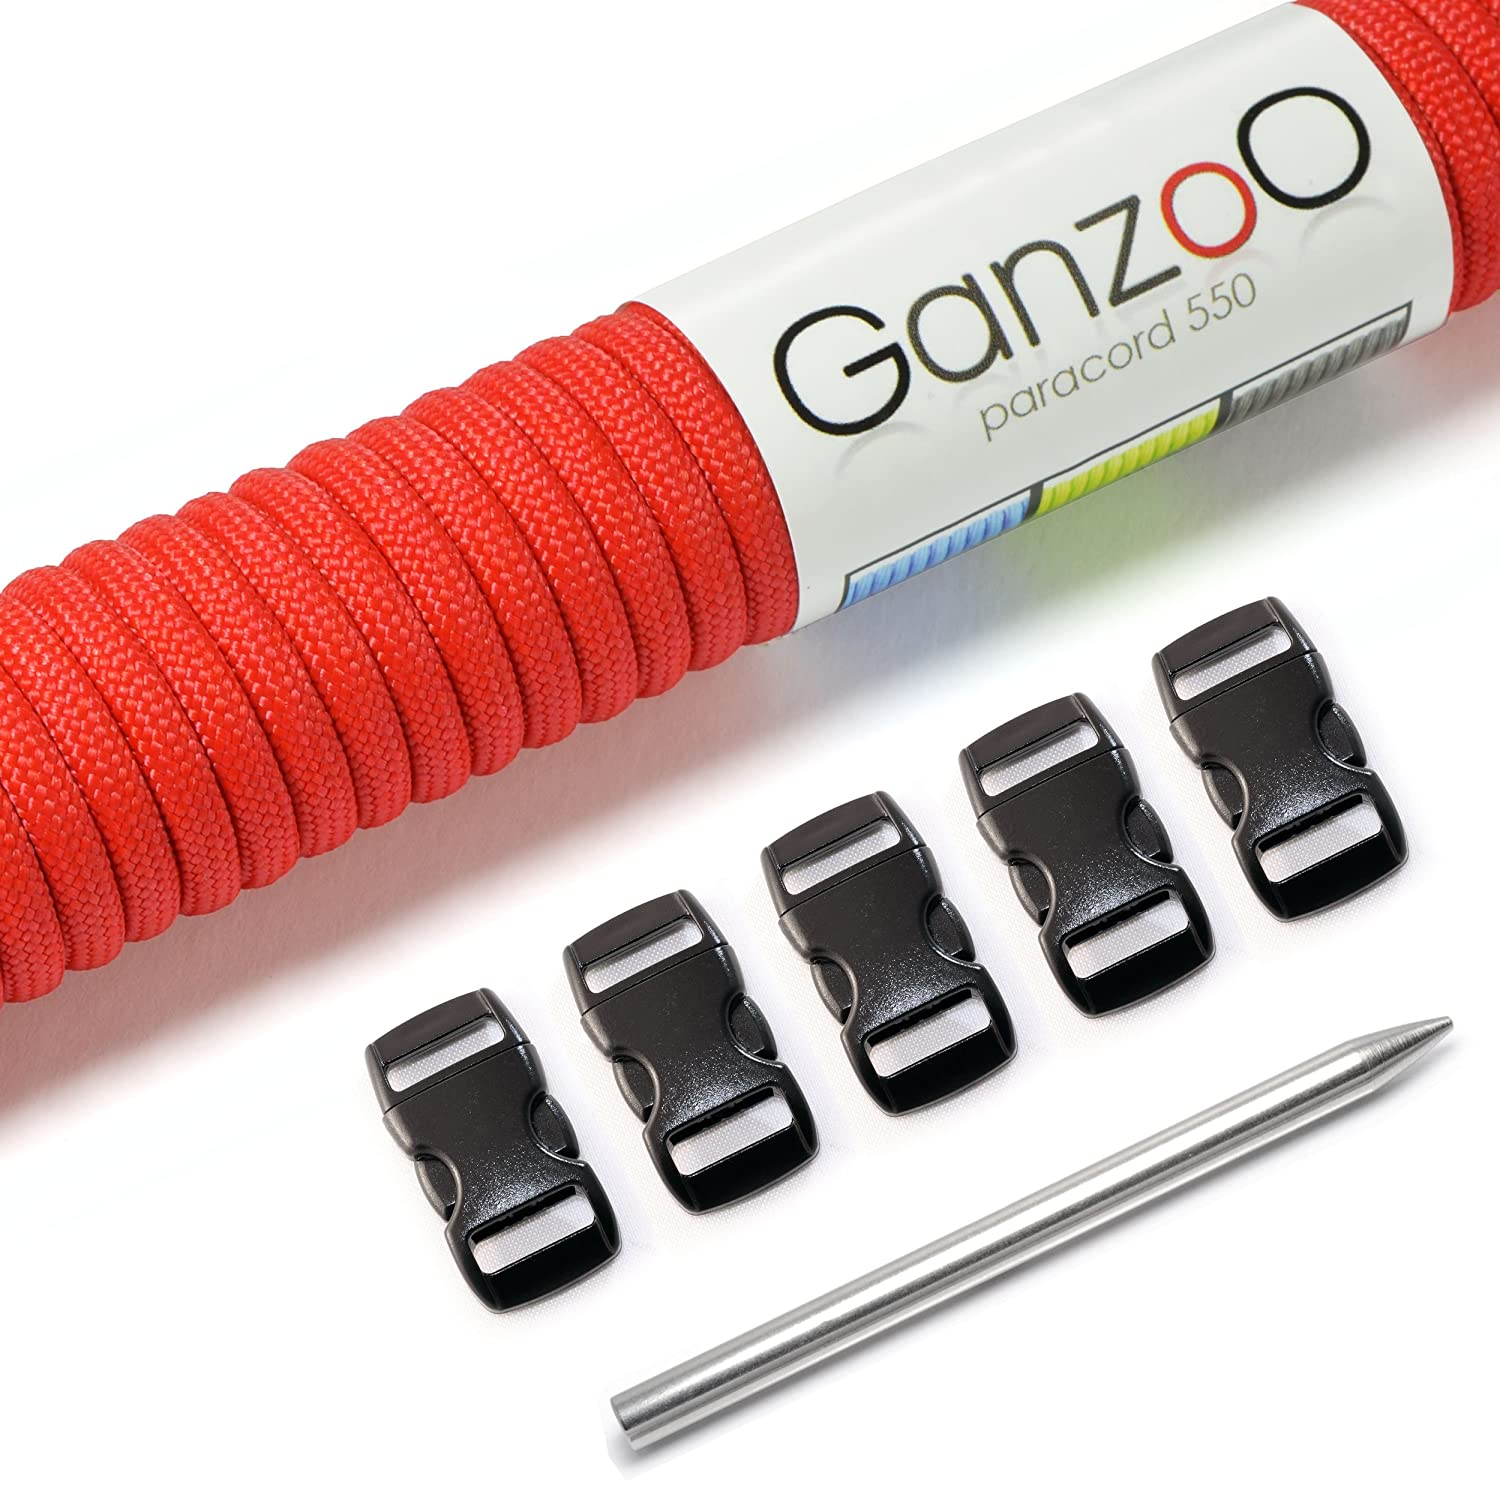 'Ganzoo Paracord 550Set–Make Your Own Dog Collar or Dog Lead, Wires with 4mm Thickness/Made of Plastic (3/8) and Paracord Pin Craft Set–Available in a Wide Range of Colours Ganzoo #5011_5110